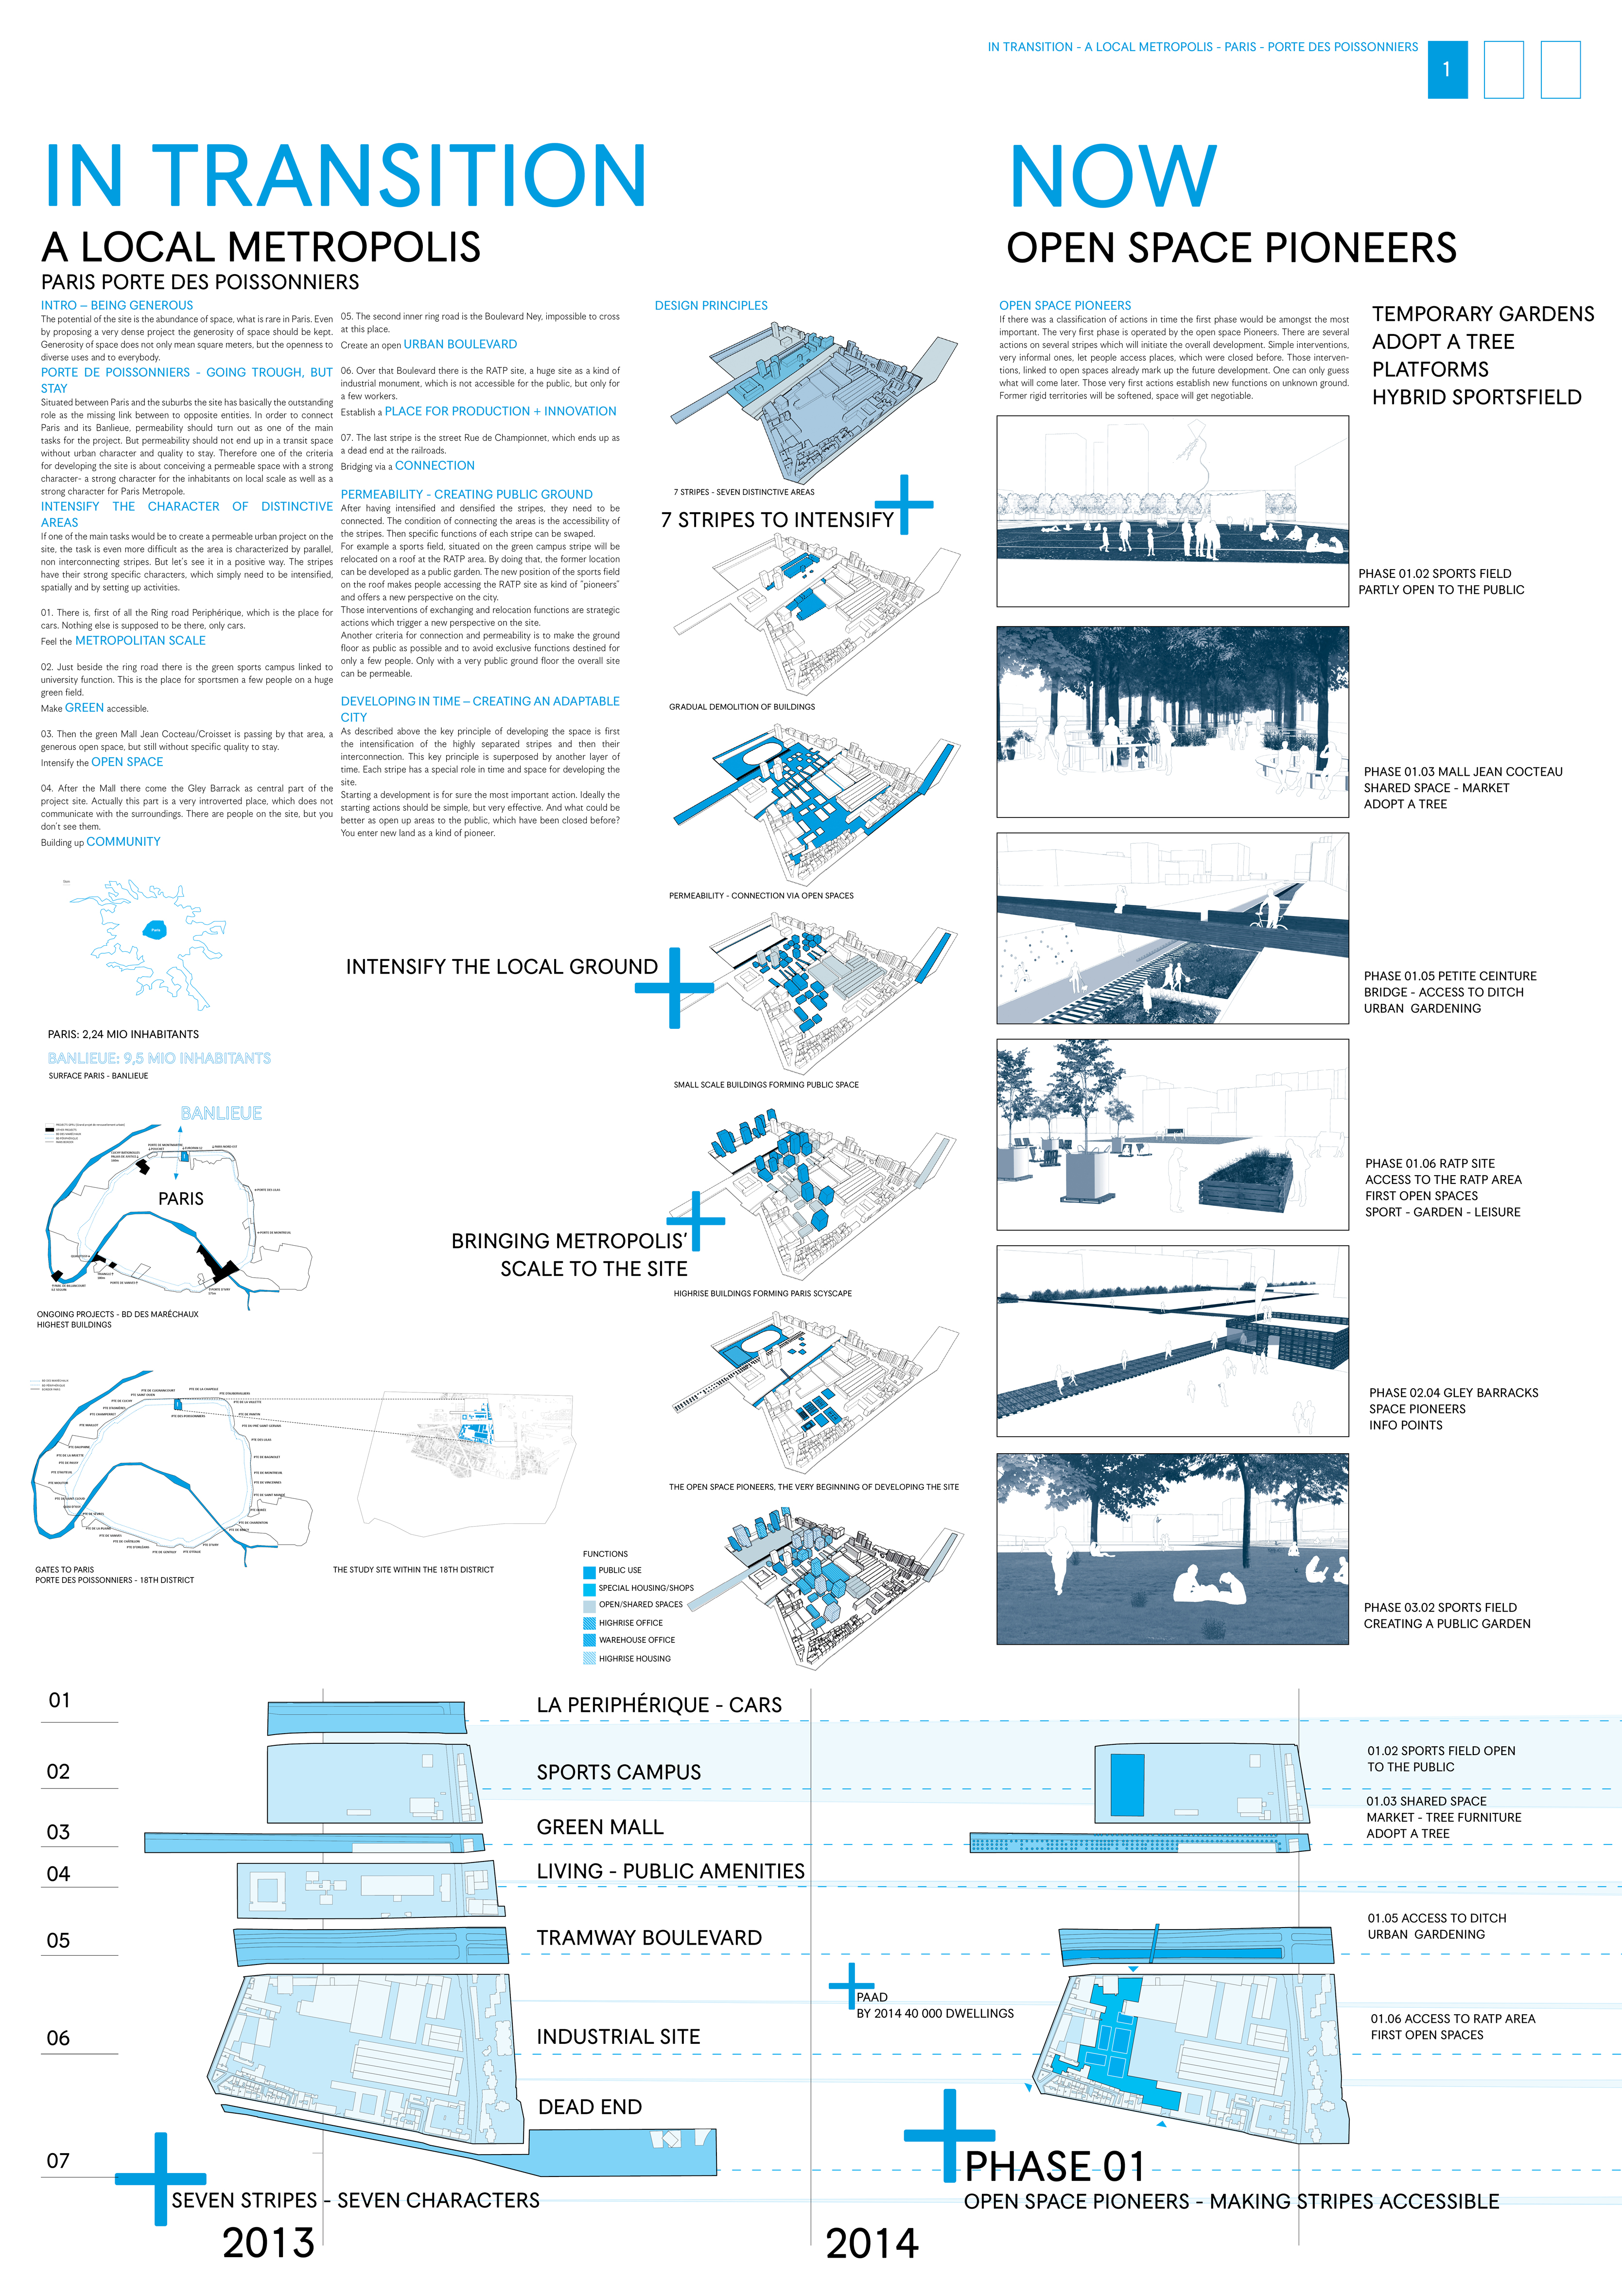 PARIS_IN TRANSITION_BOARD_A1_01